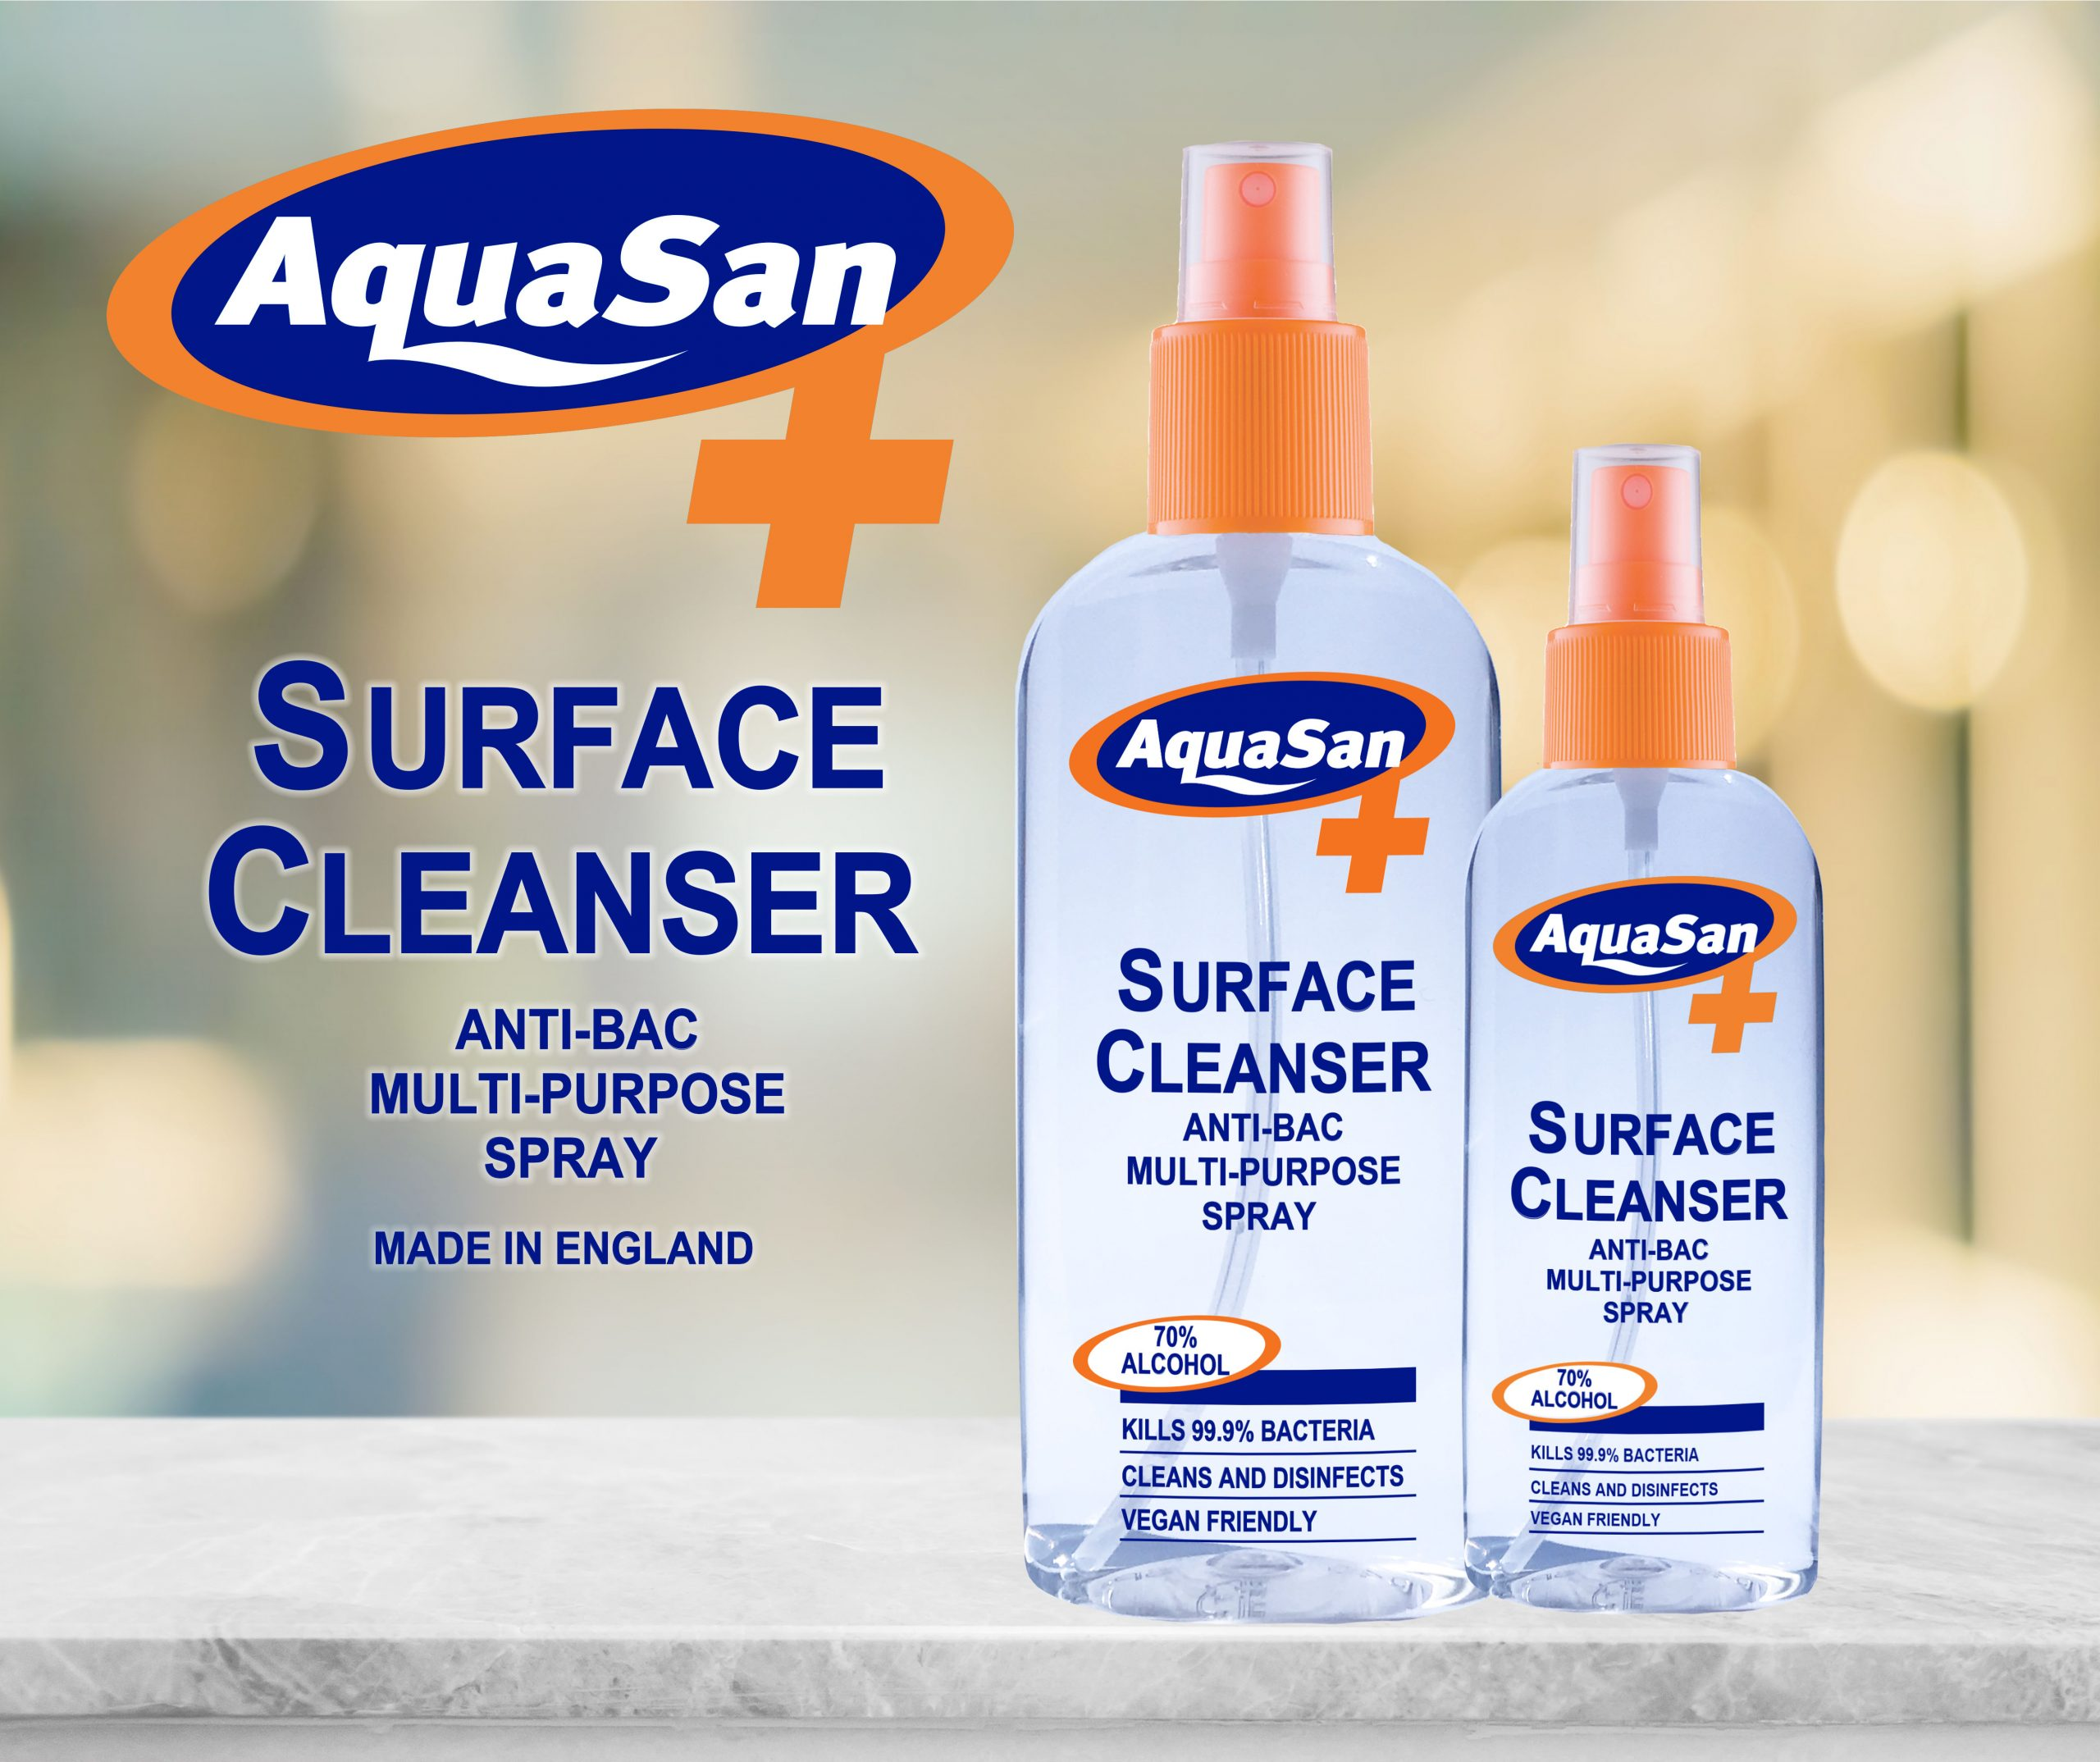 Malibu Aquasan Antibacterial Surface Cleanser Multipurpose Spray Sterry Telecoms